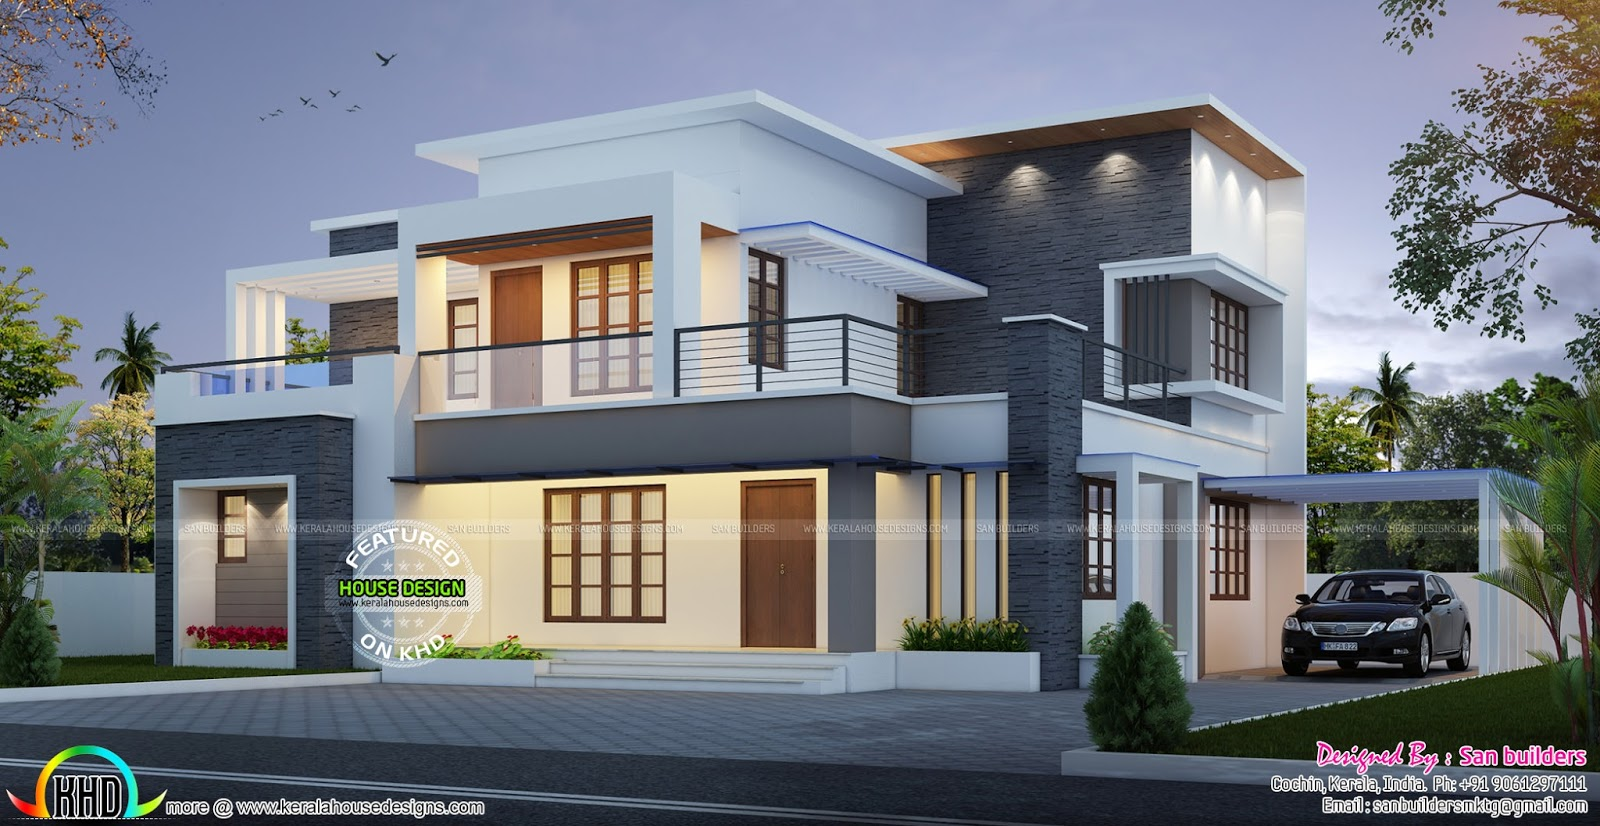 House plan and elevation by san builders kerala home for Home builders house plans